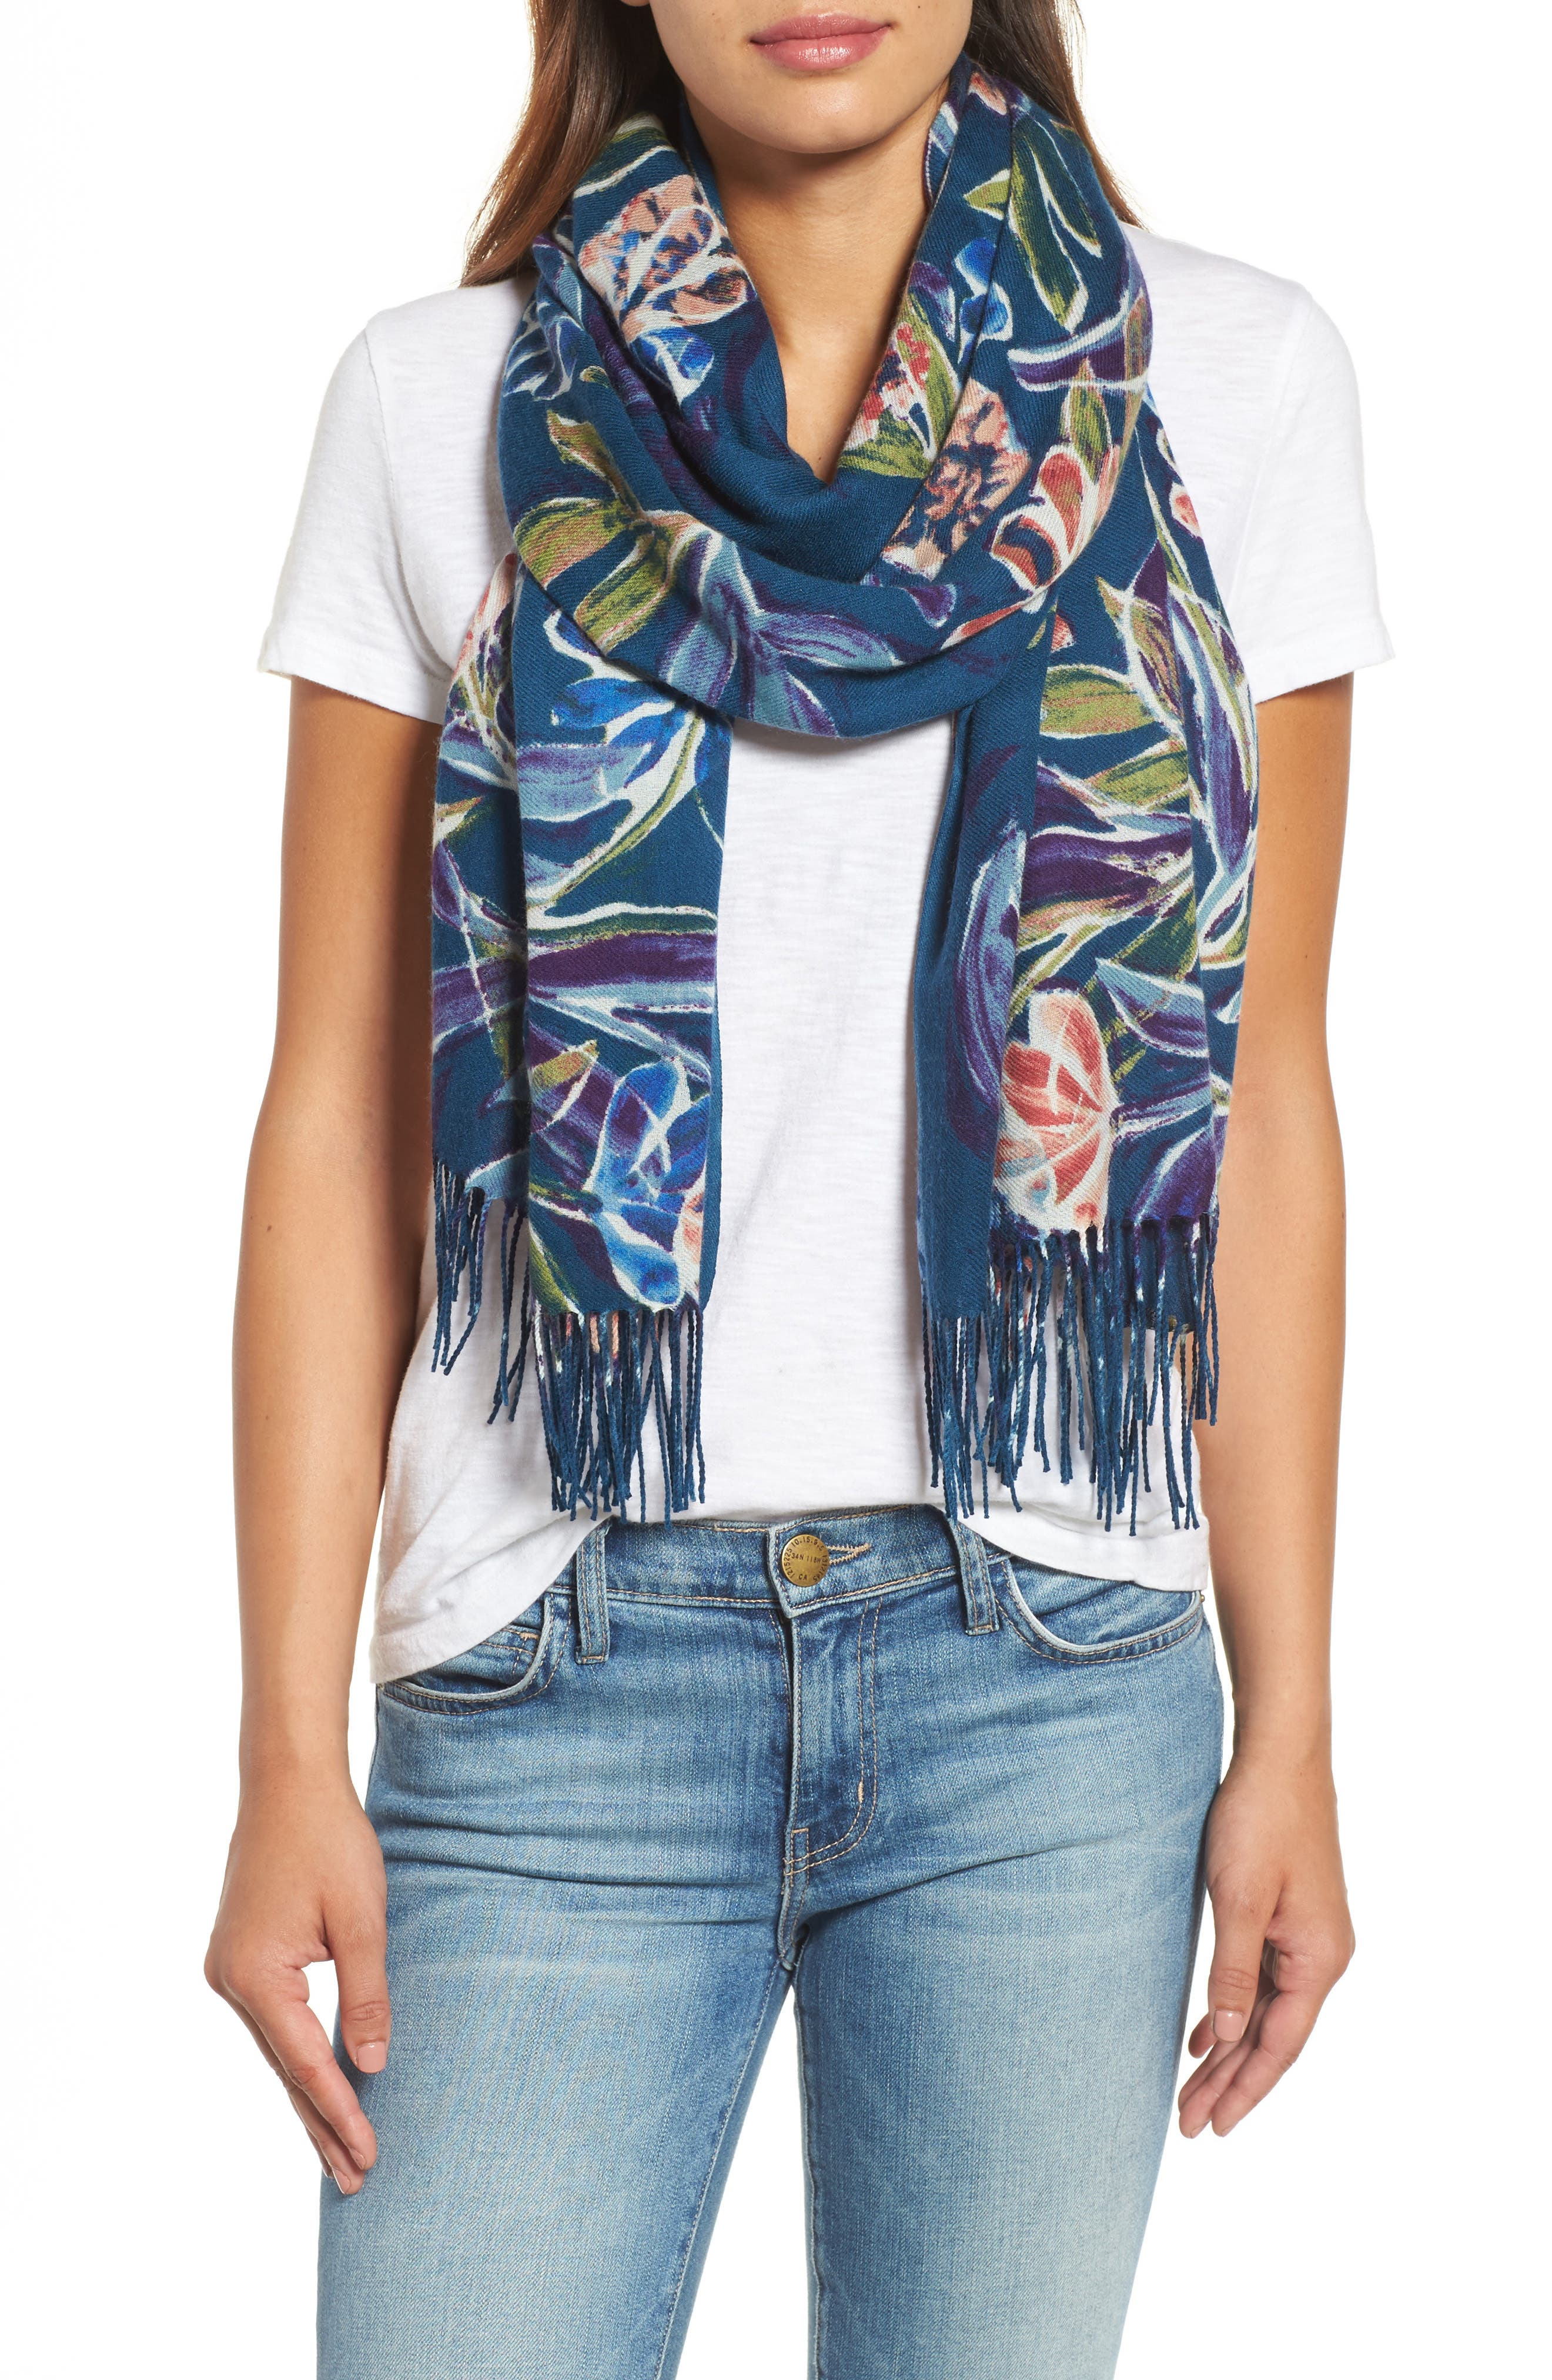 Nordstrom Pressed Flowers Tissue Weight Wool & Cashmere Scarf